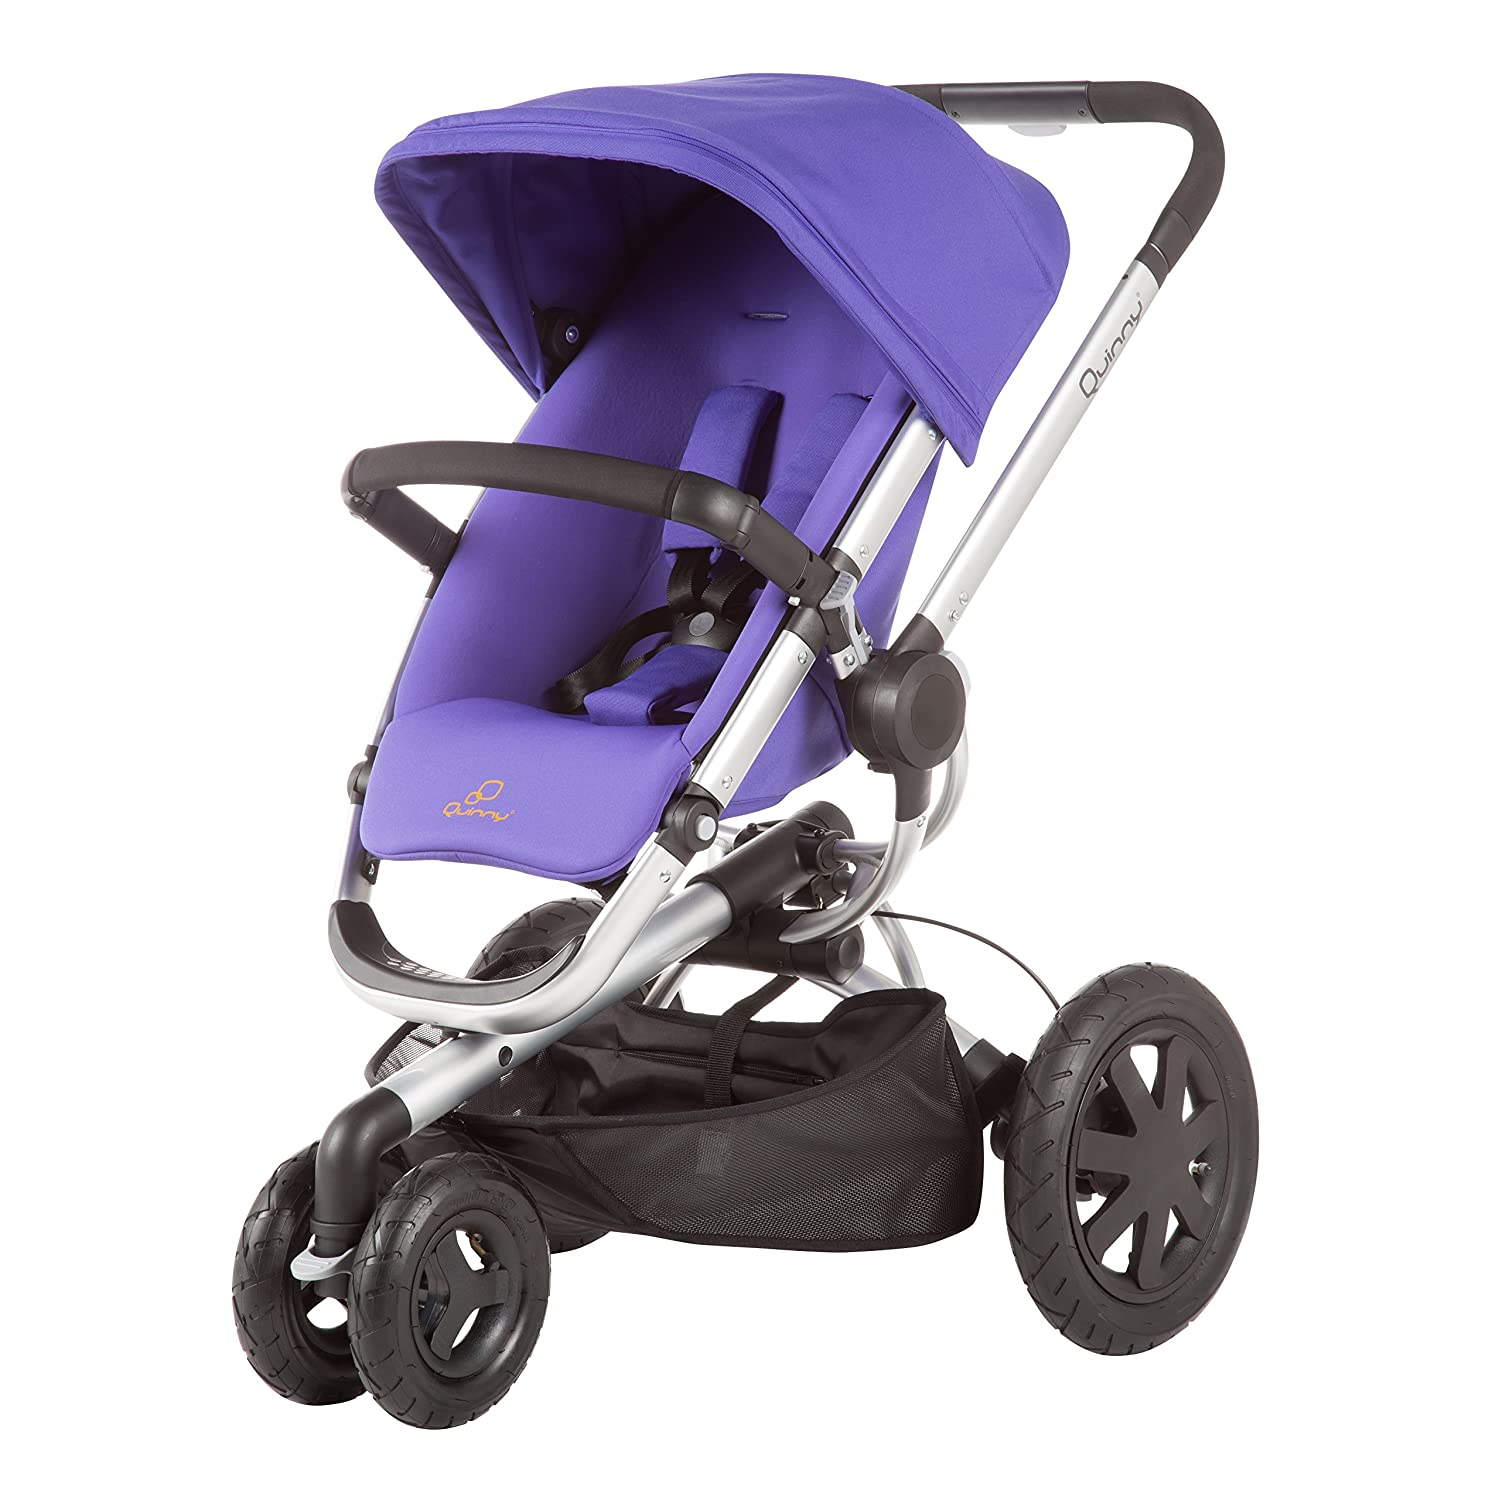 2013 Quinny Buzz Xtra Stroller, Purple Pace 81b8OpPbYZL